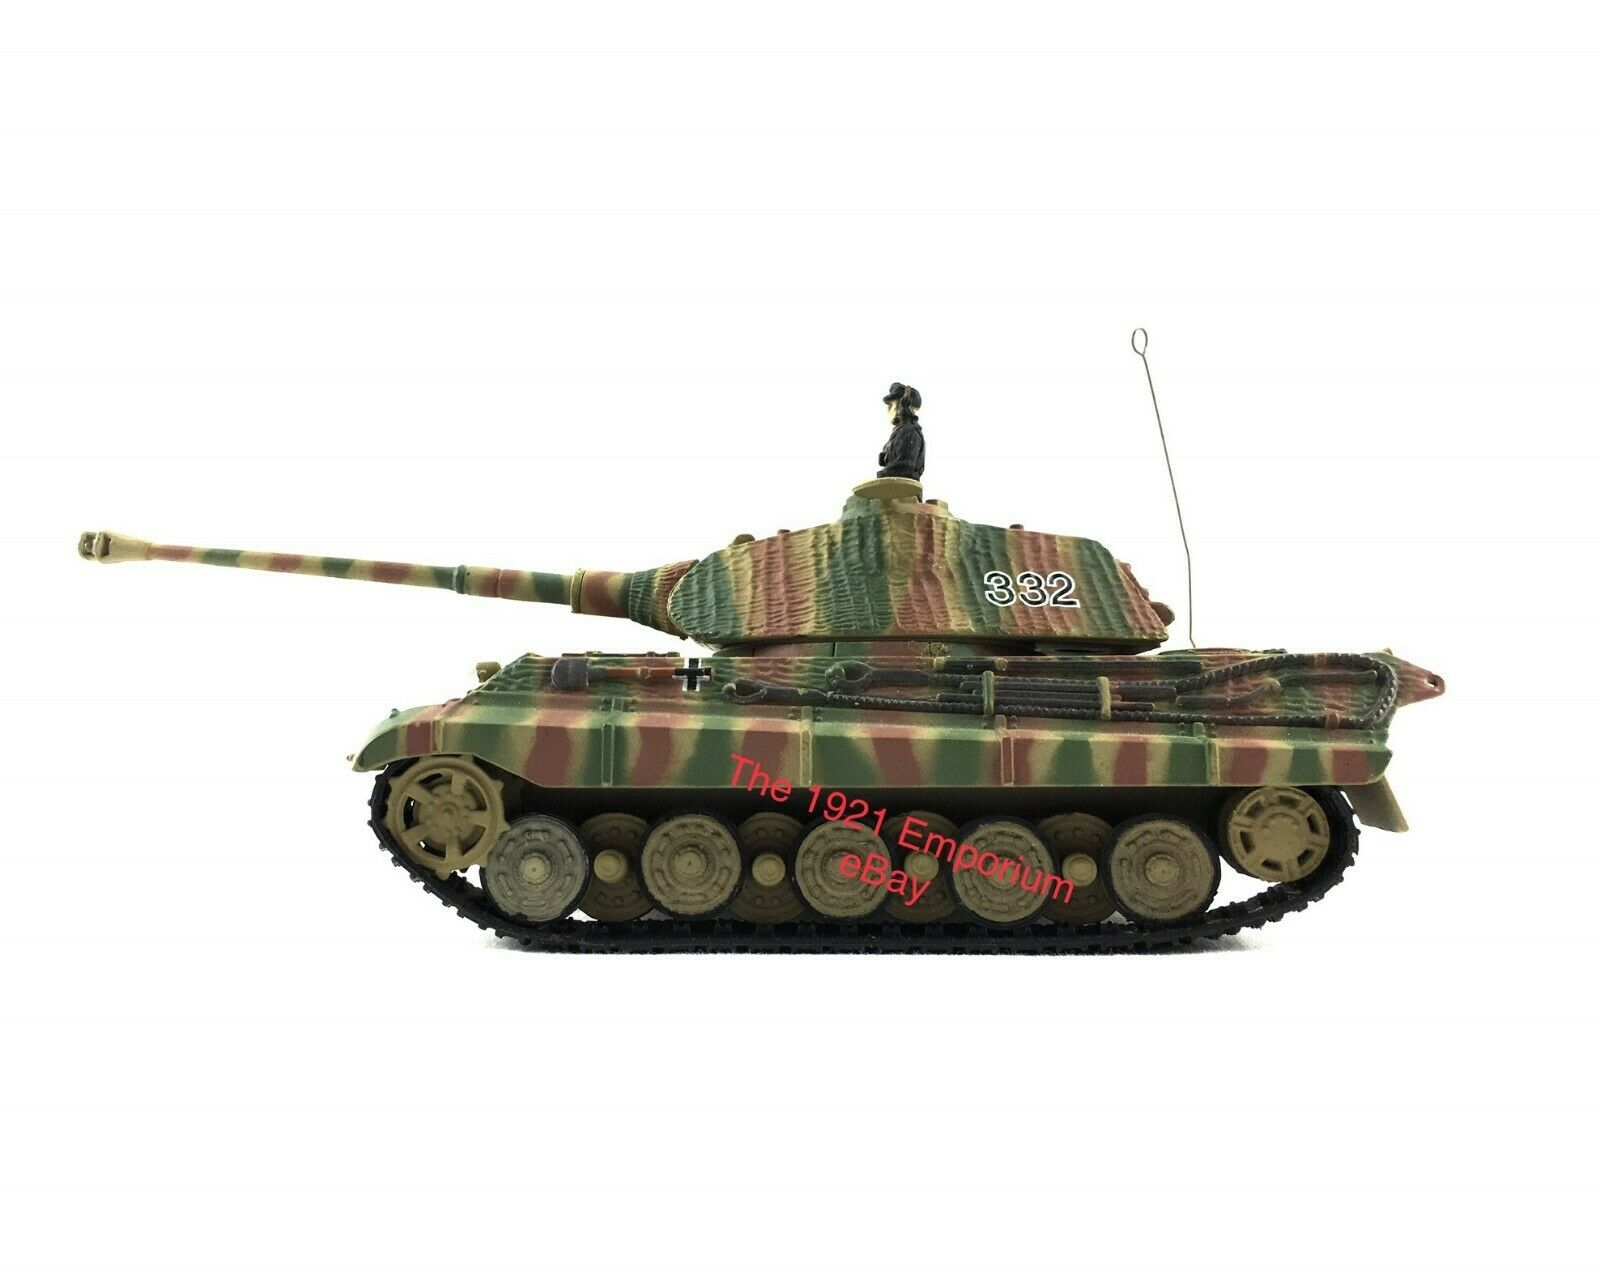 1 72 Diecast Unimax Toys Forces of Valor WWII German Army King Tiger Tank Panzer